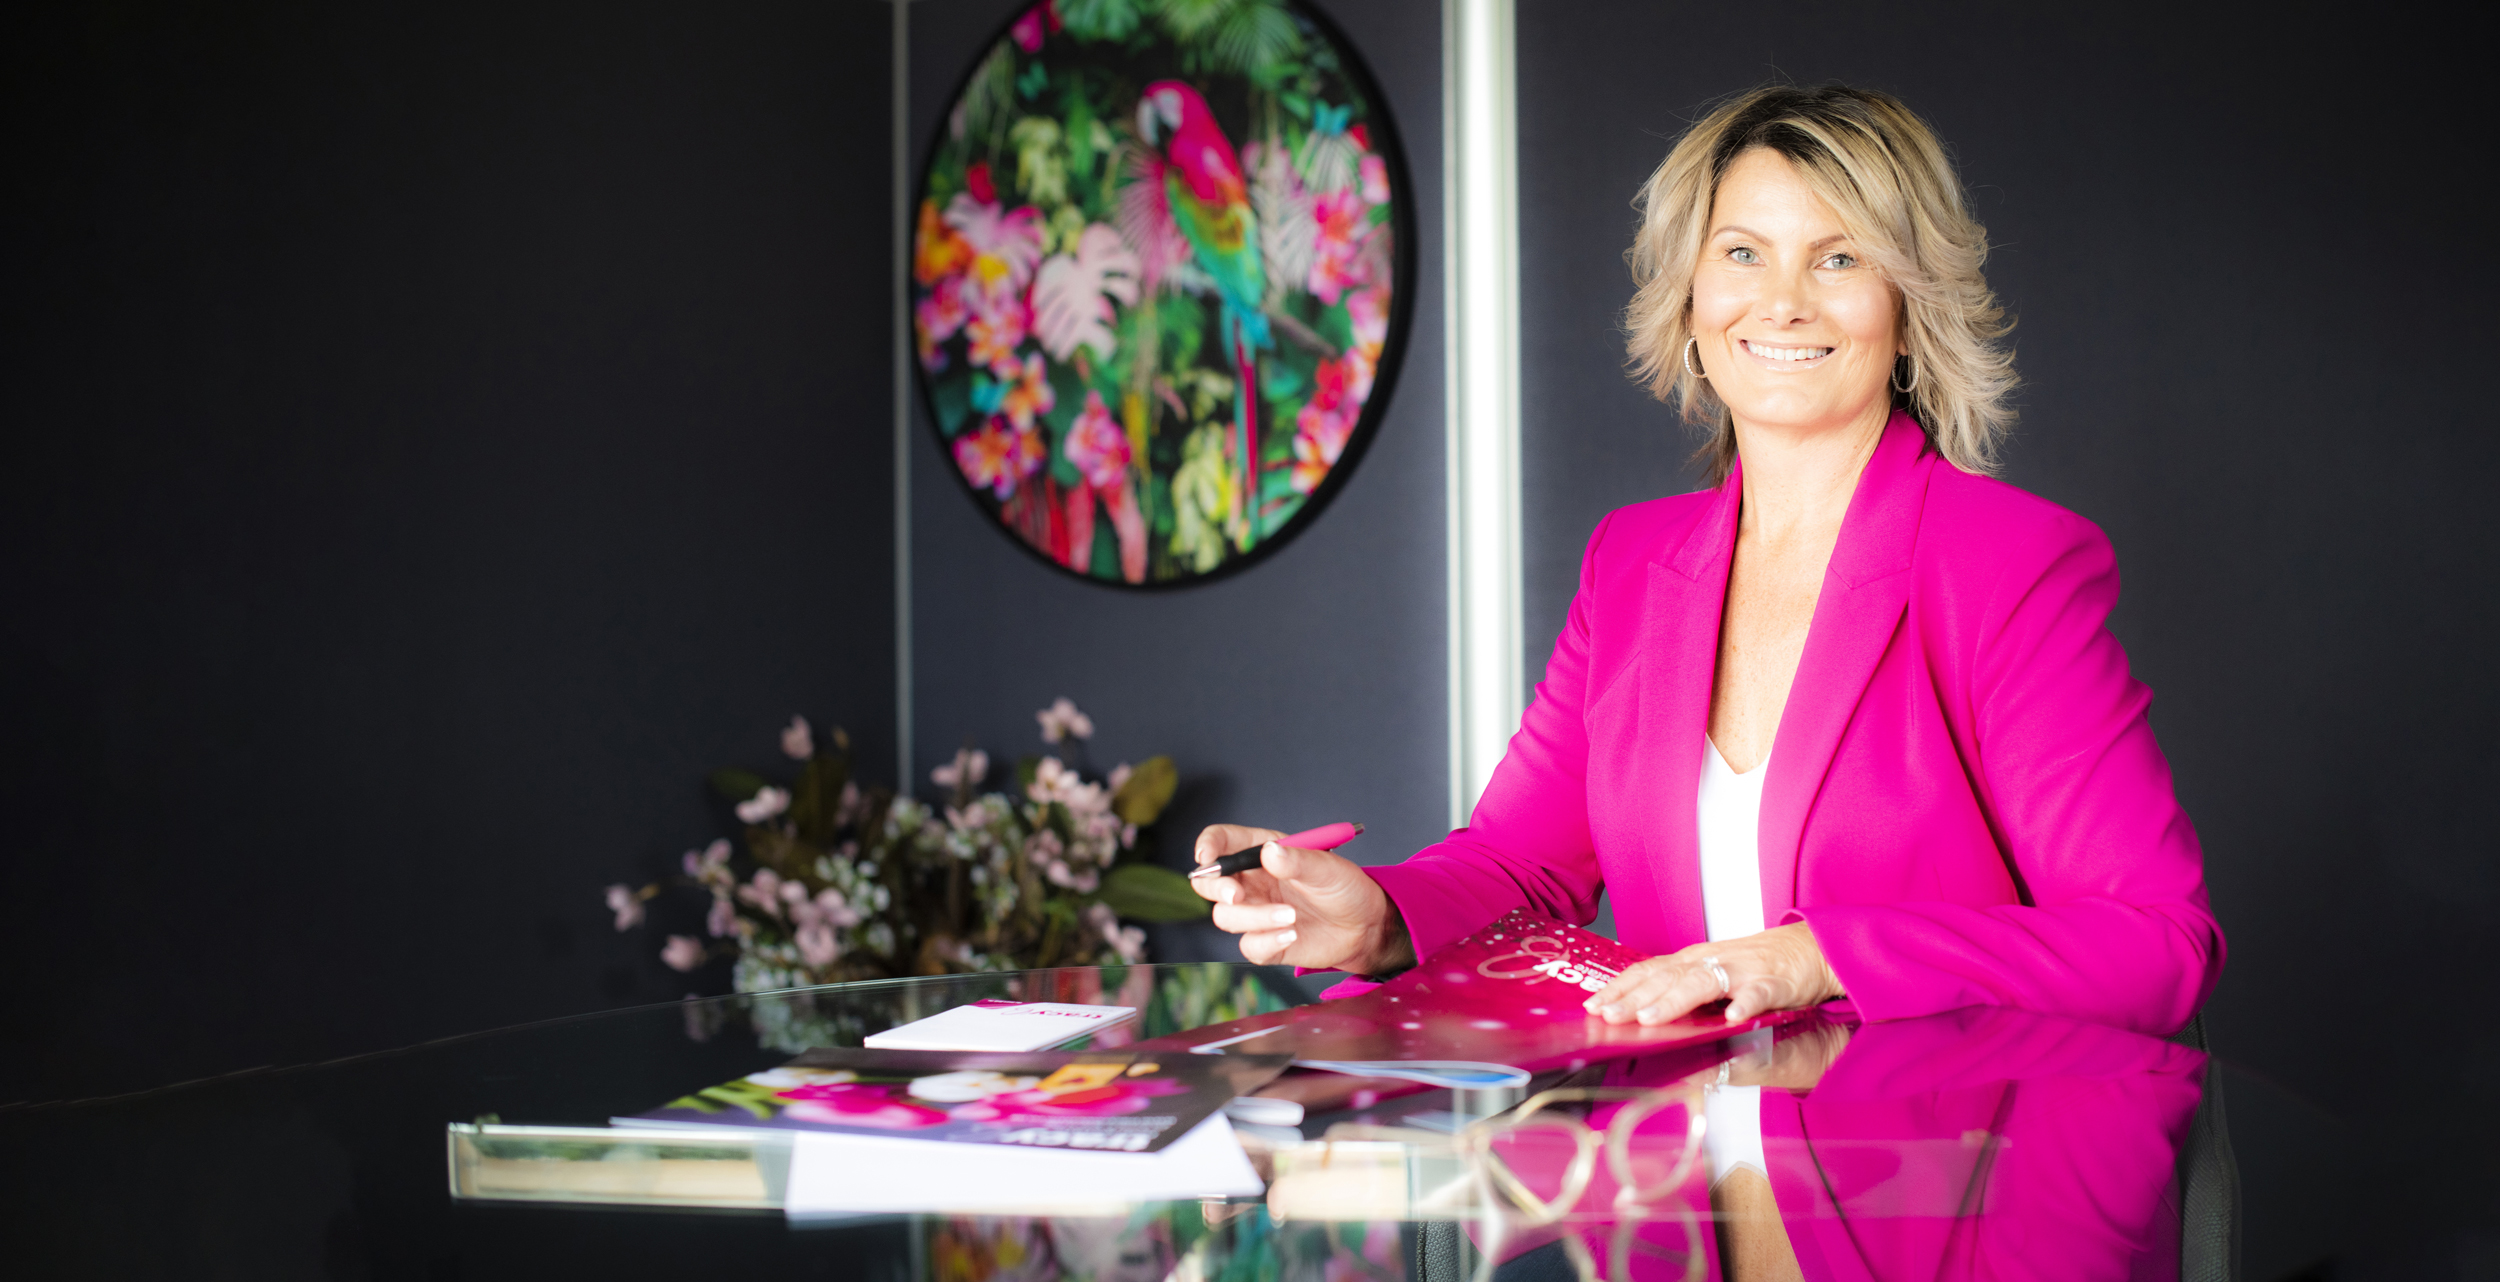 Real Estate Agent, Tracy is sitting at her desk smiling and wearing a striking, magenta blazer.